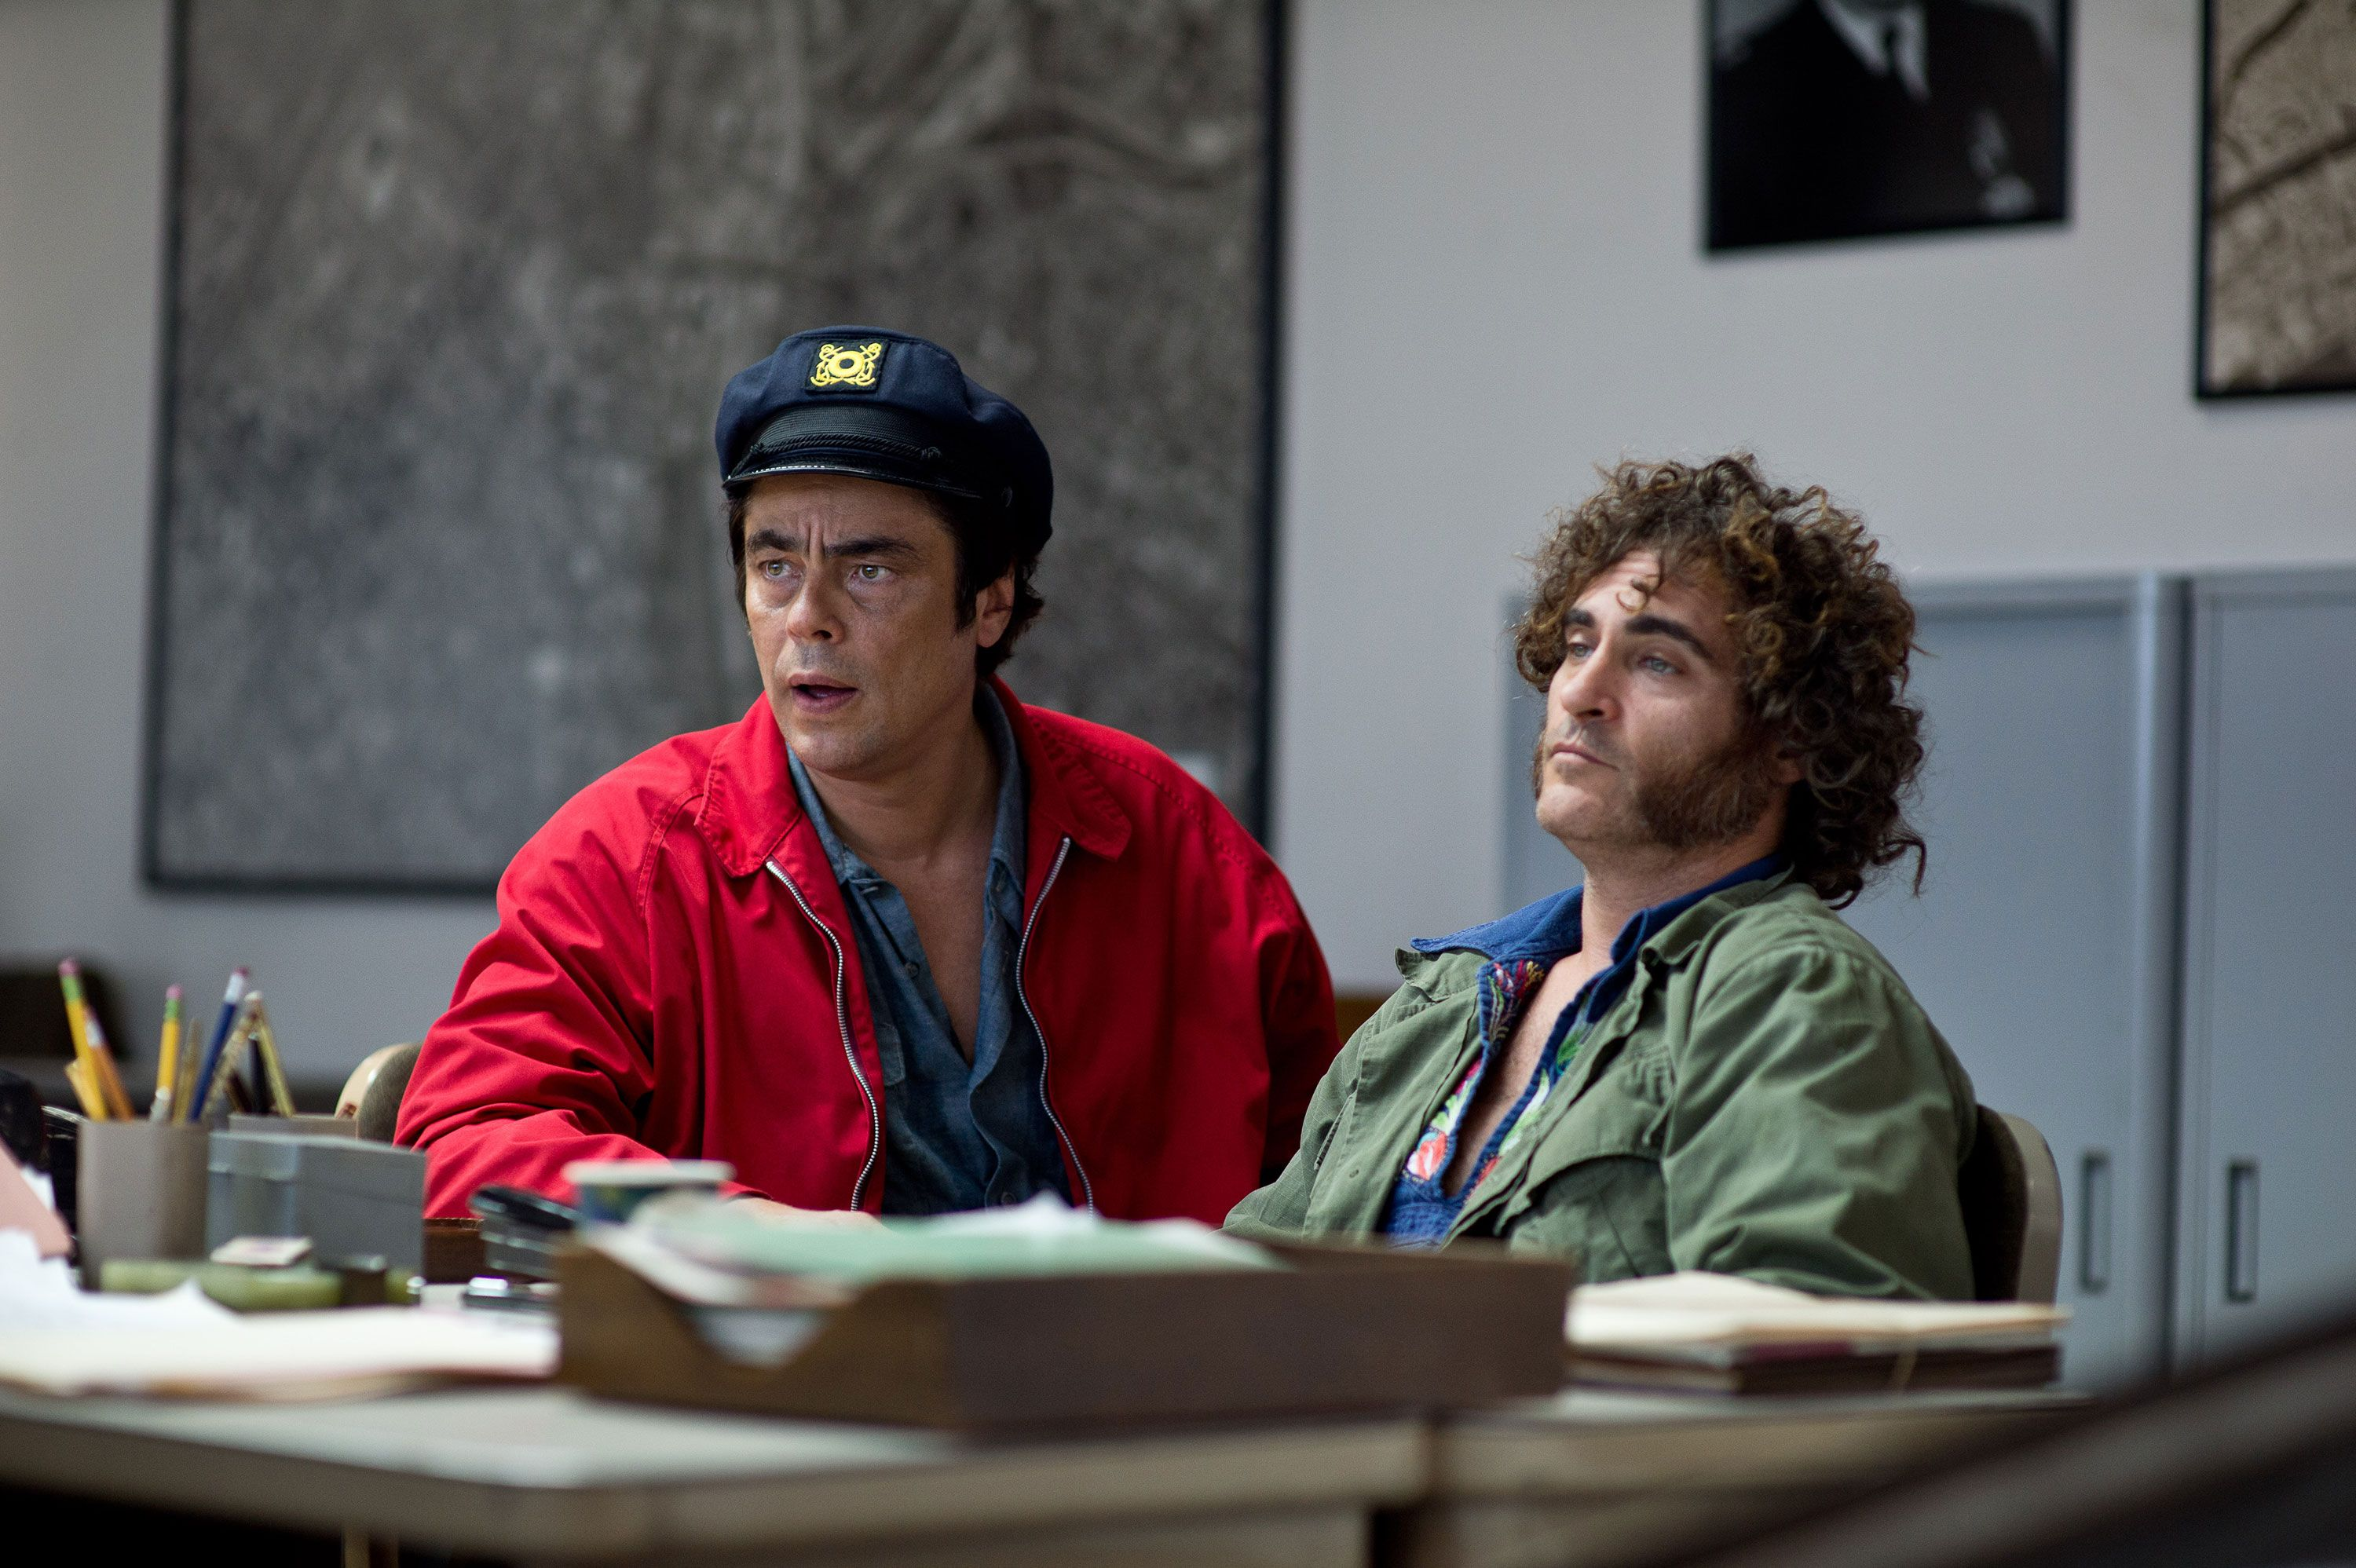 over 45 new inherent vice images featuring joaquin phoenix